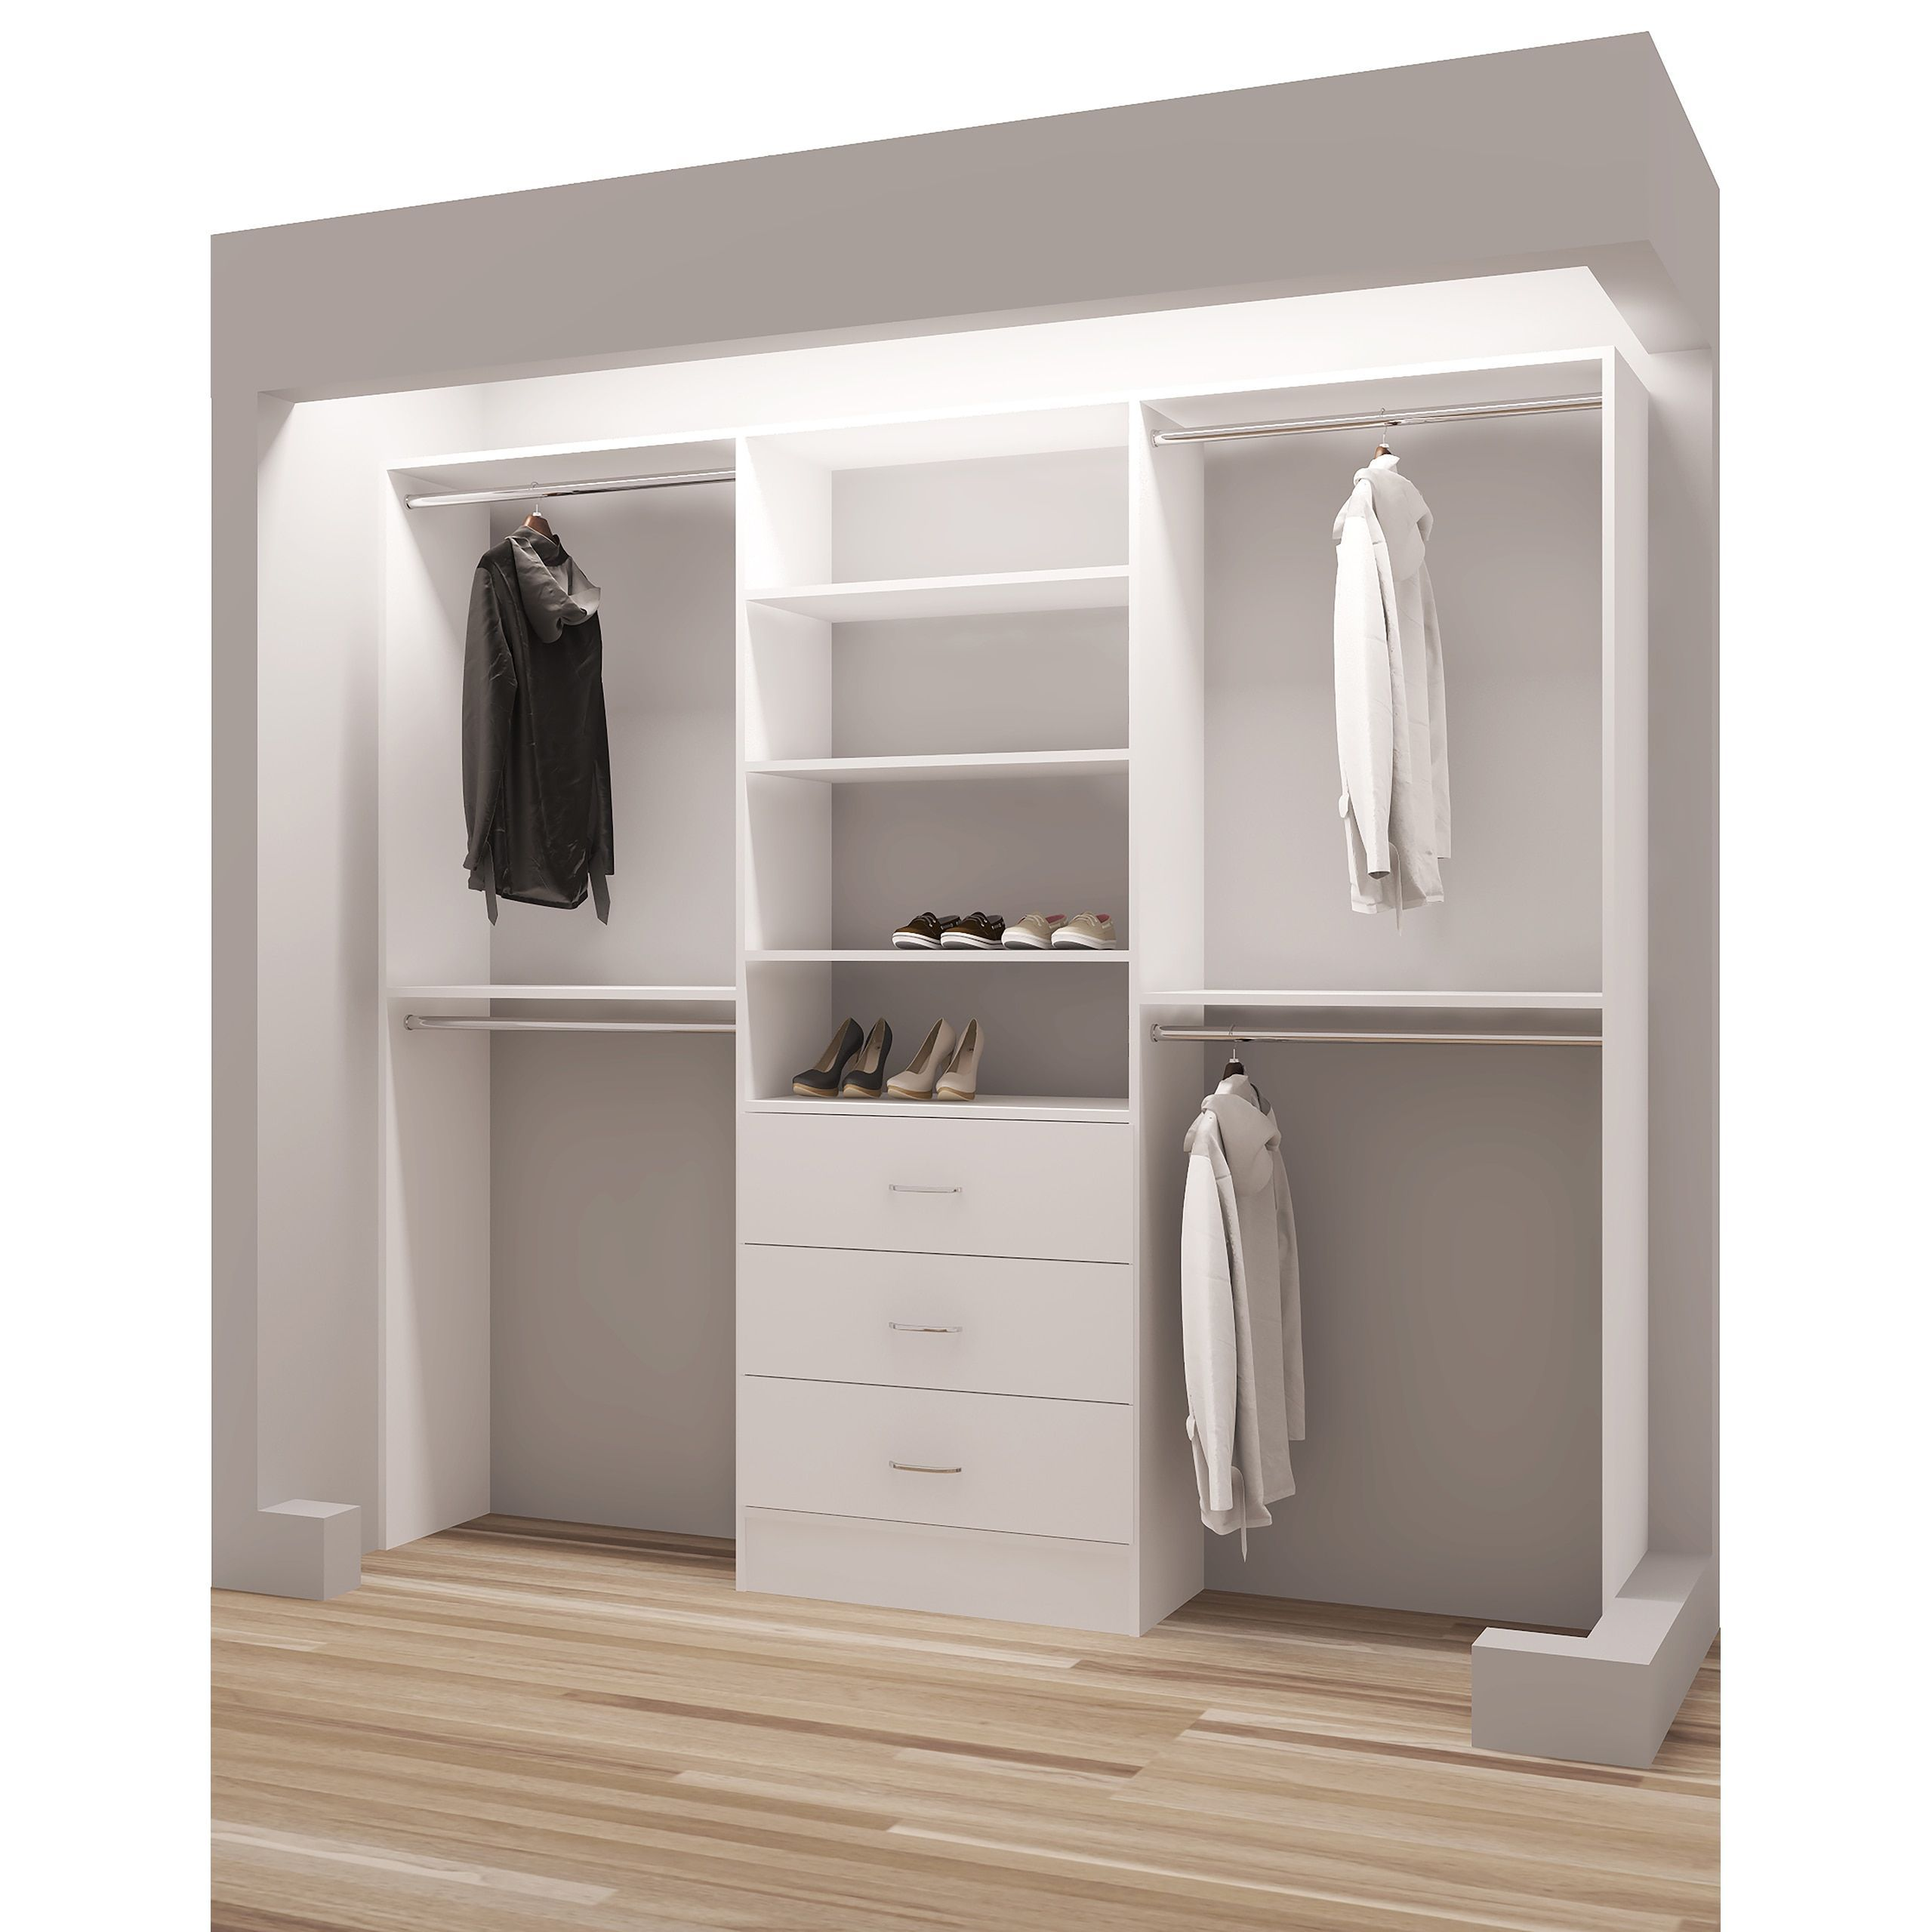 Tidysquares Classic White Wood 93 Inch Reach In Closet